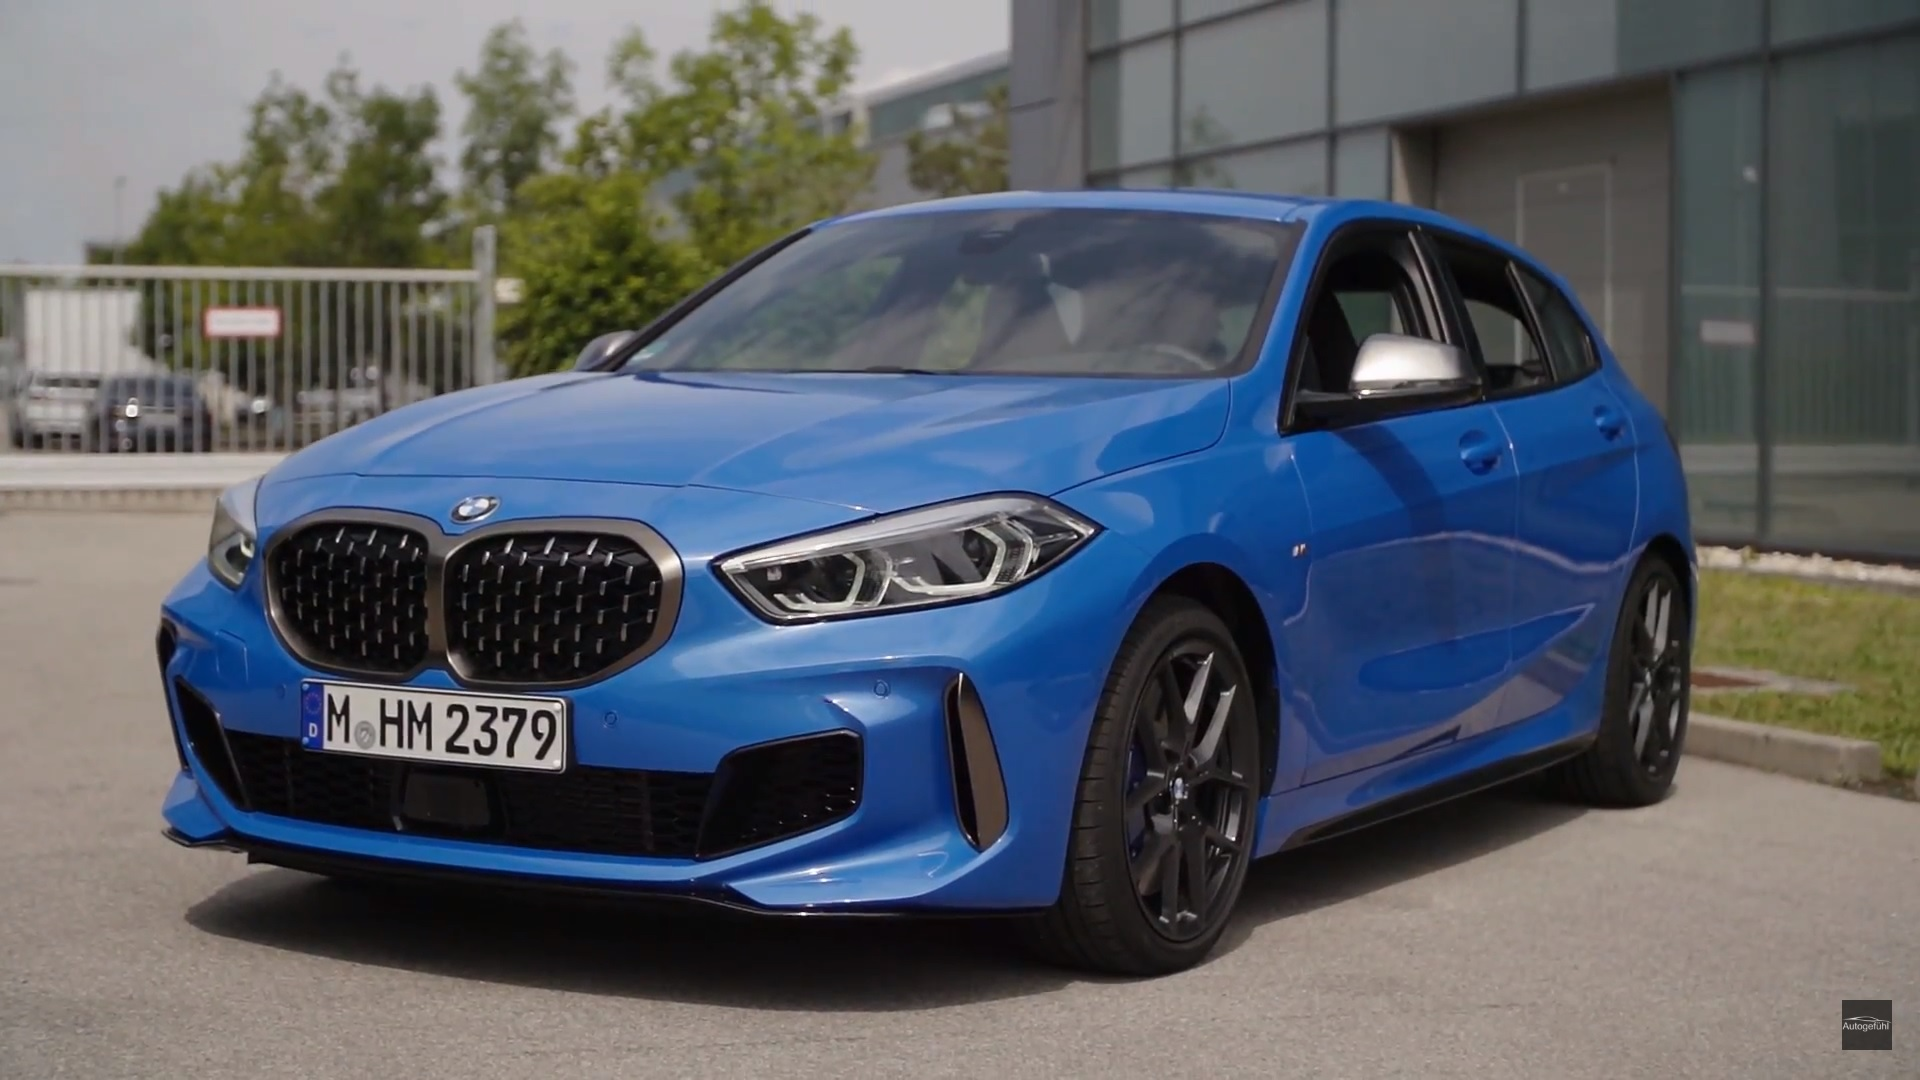 2019 Bmw 1 Series Review Roundup Has Bmw Dropped The Ball With Its